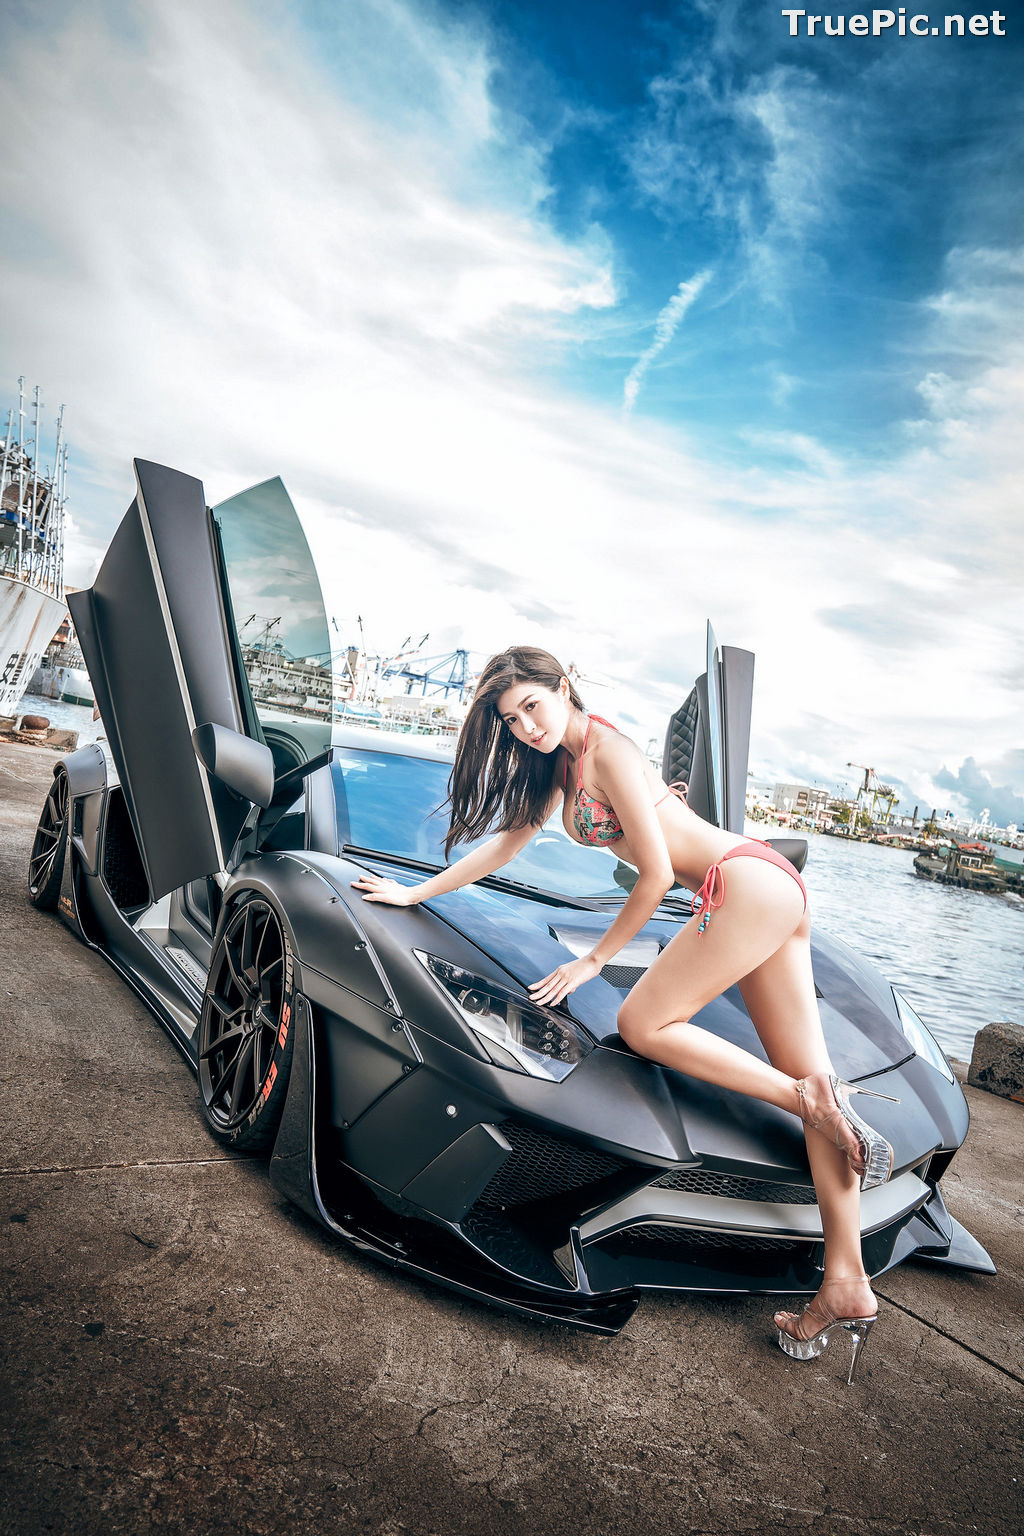 Image Taiwanese Model - 珈伊Femi - Sexy Beautiful Girl and Supercars - TruePic.net - Picture-8